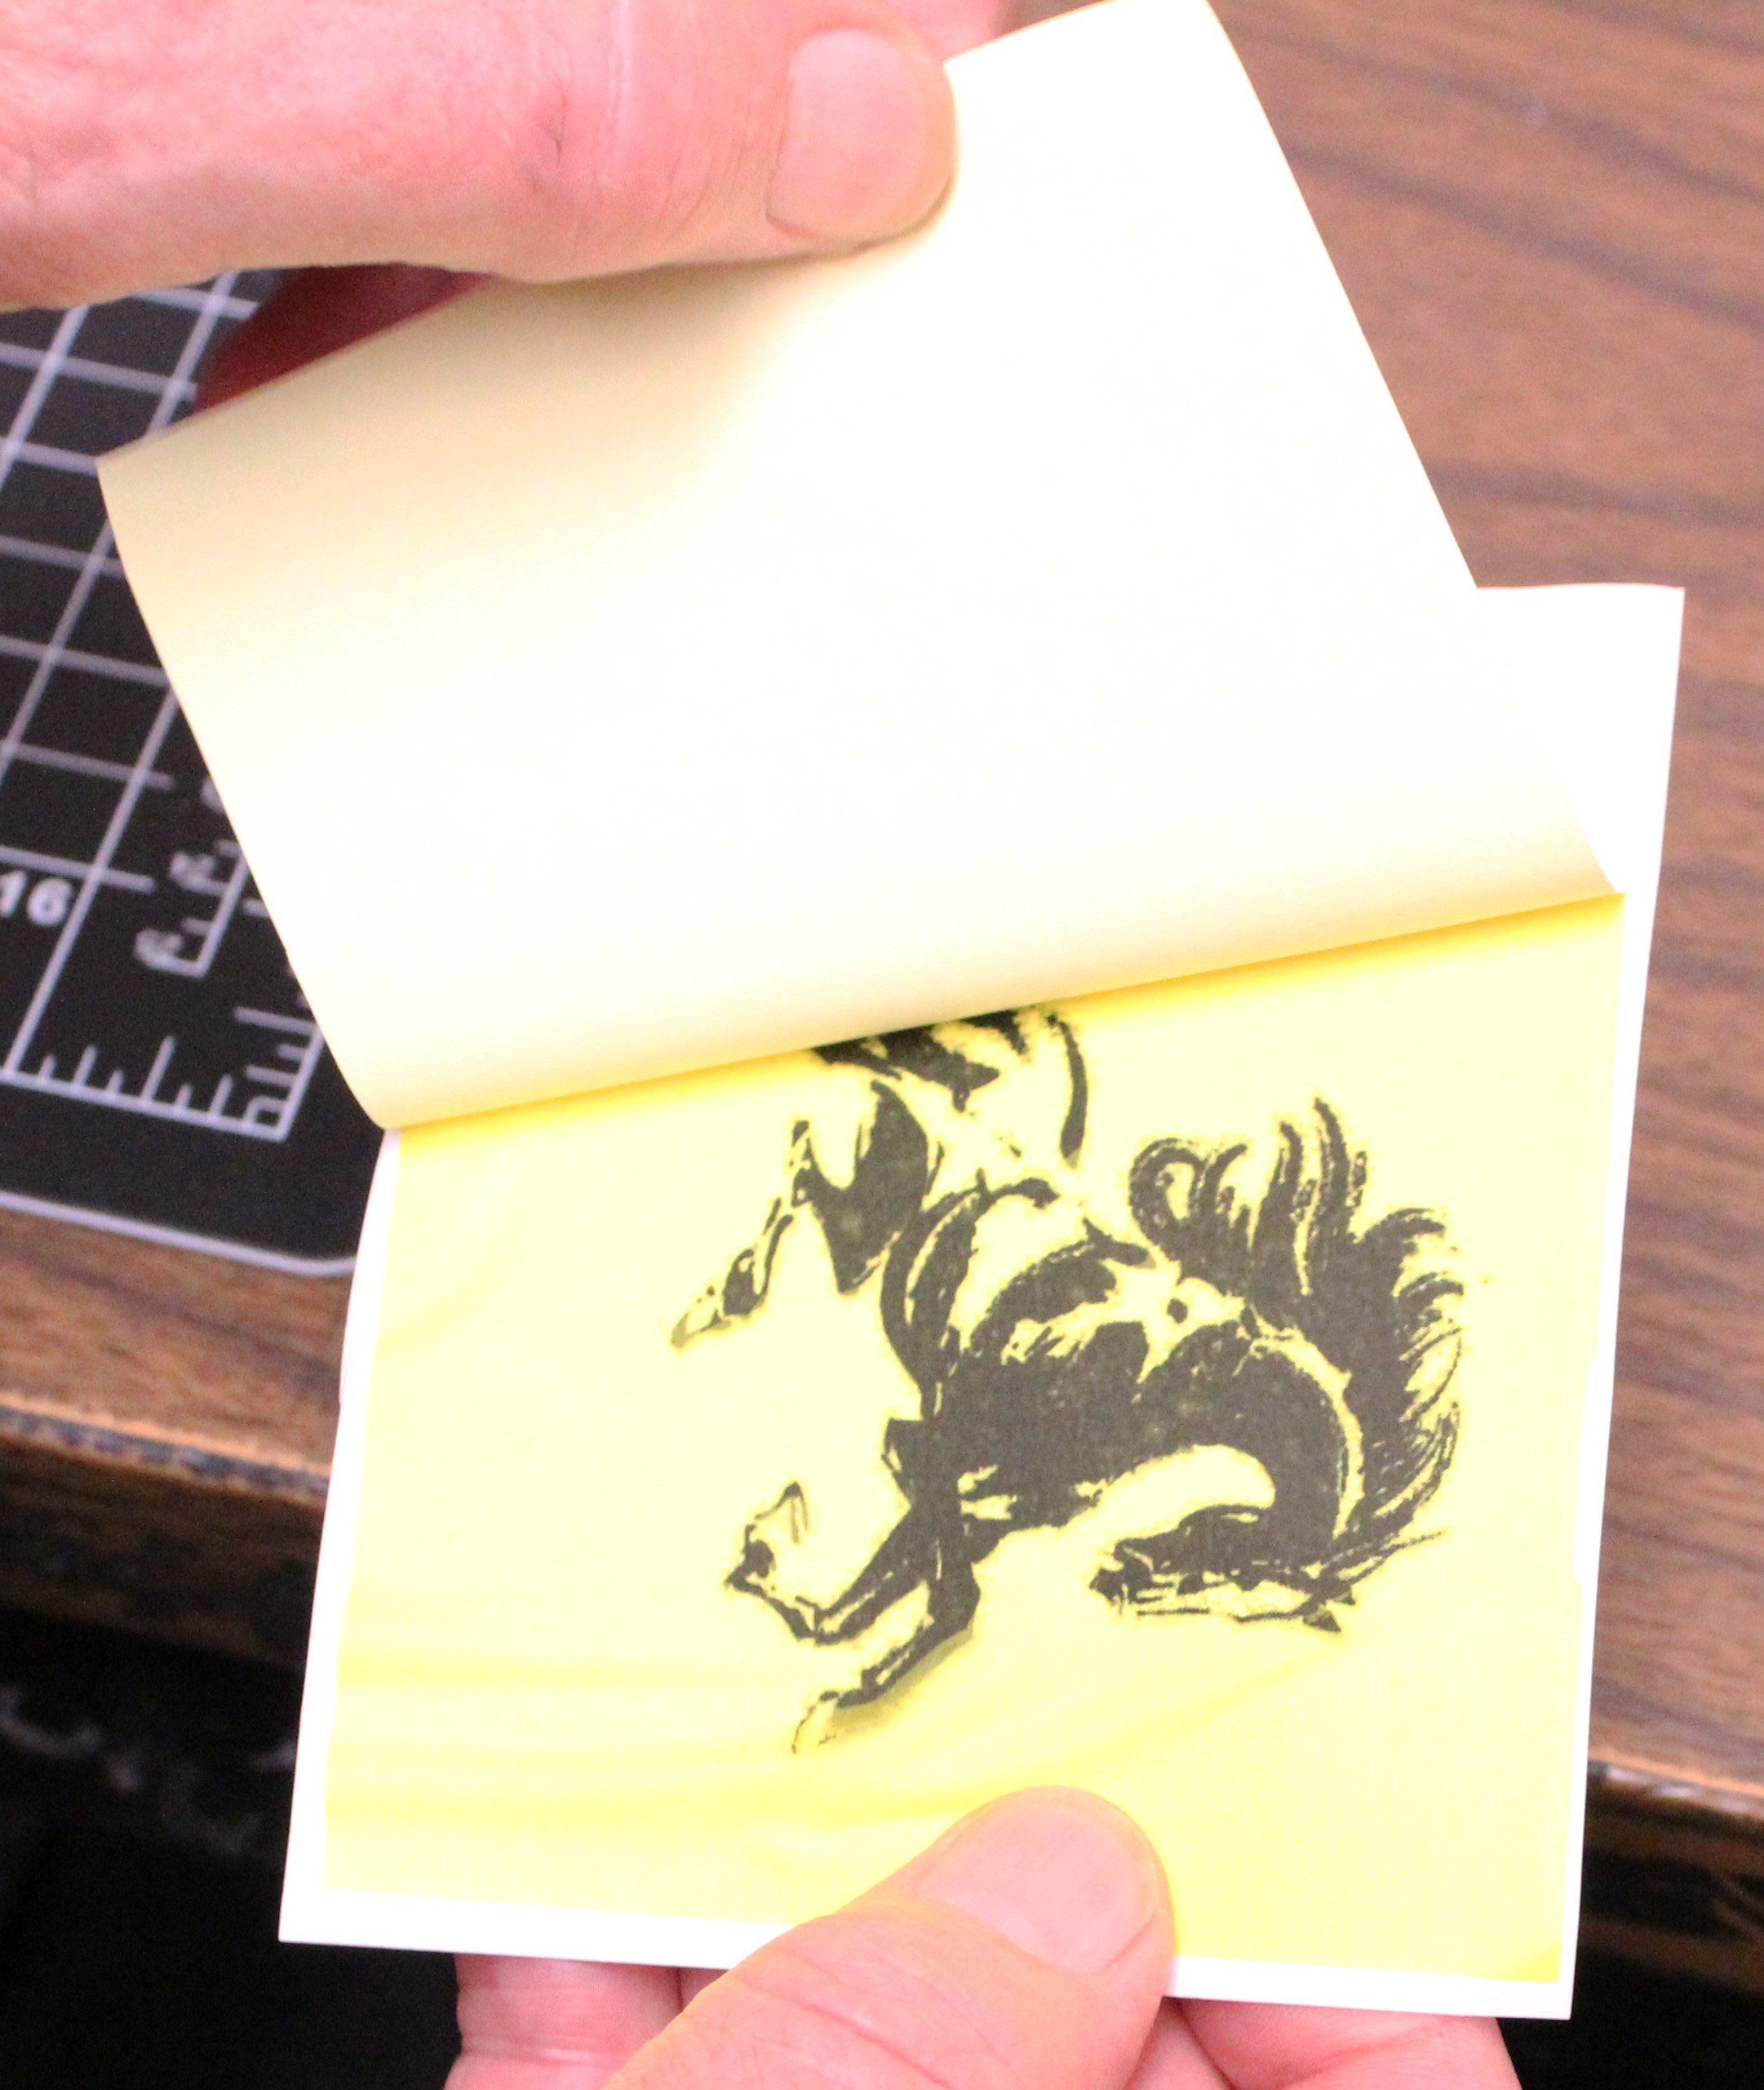 Ceramic decal lamination method